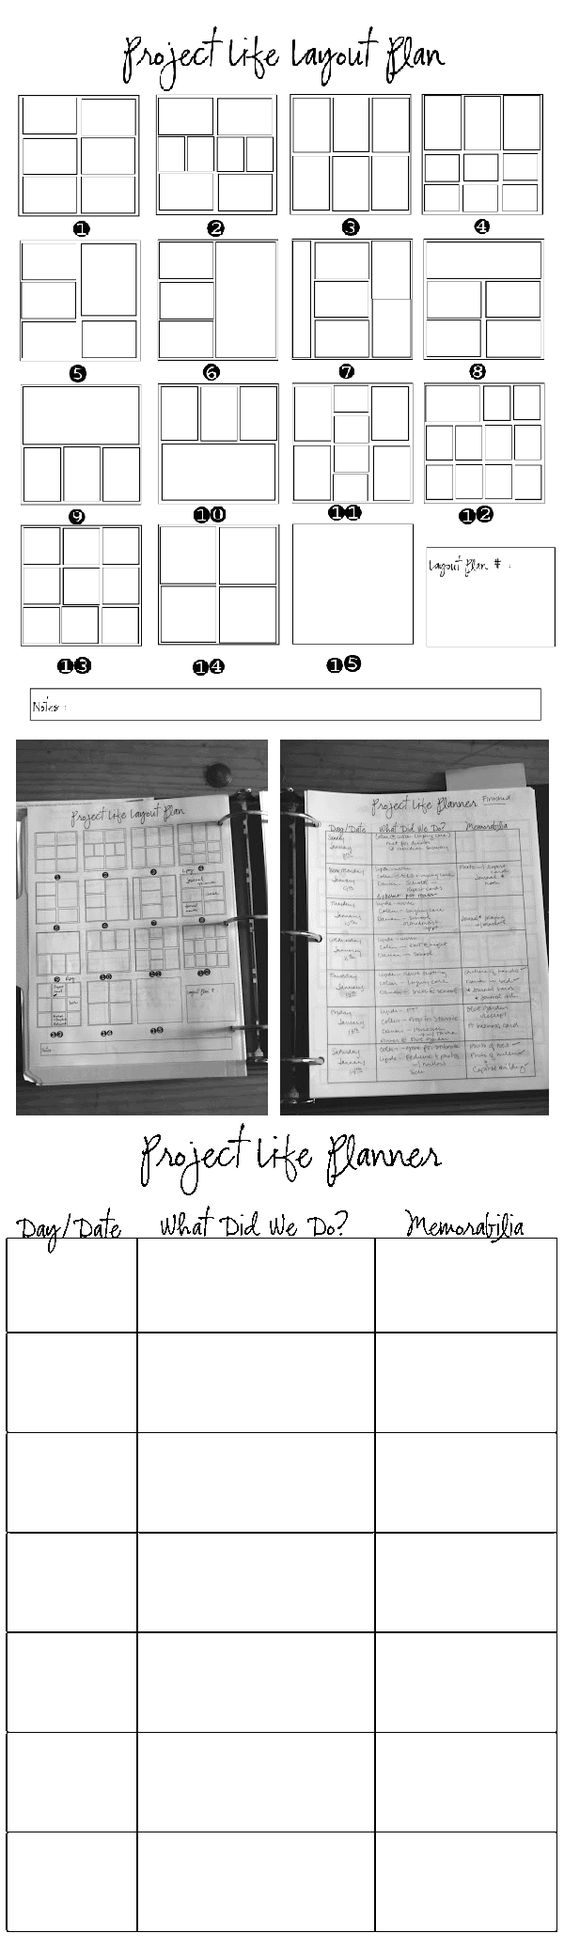 project life planner sheets: free printables from Elle C